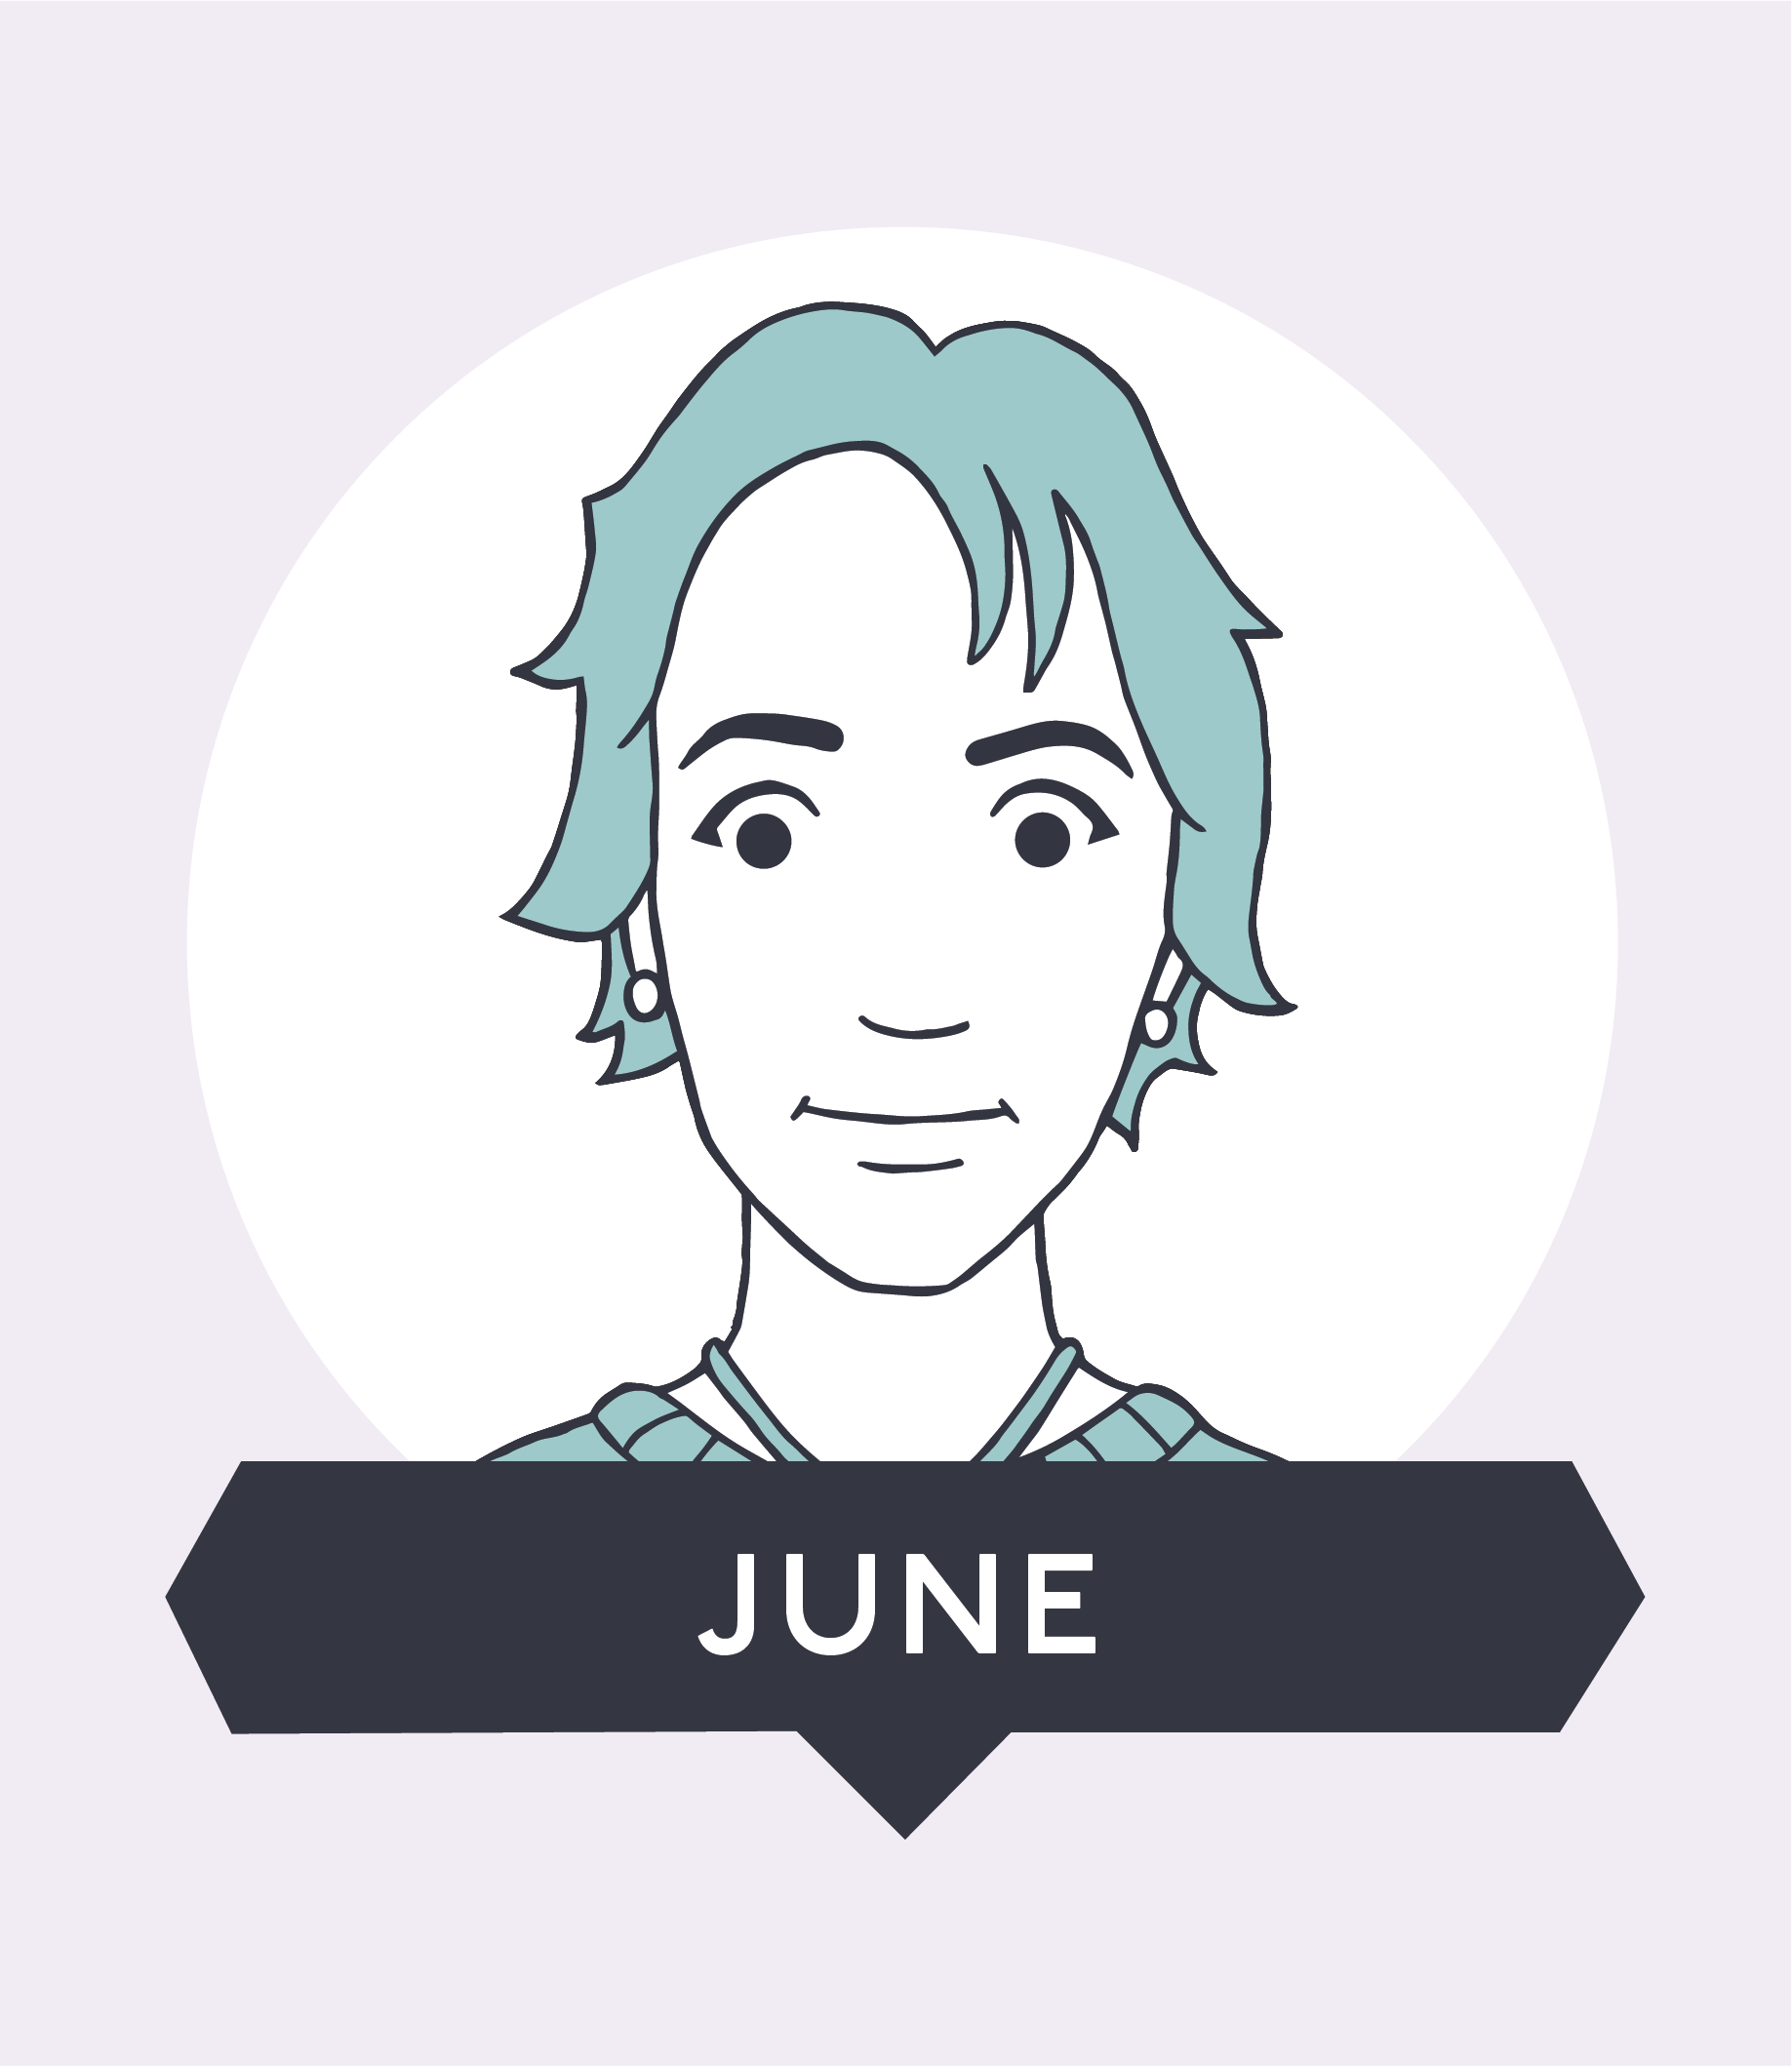 June profile picture